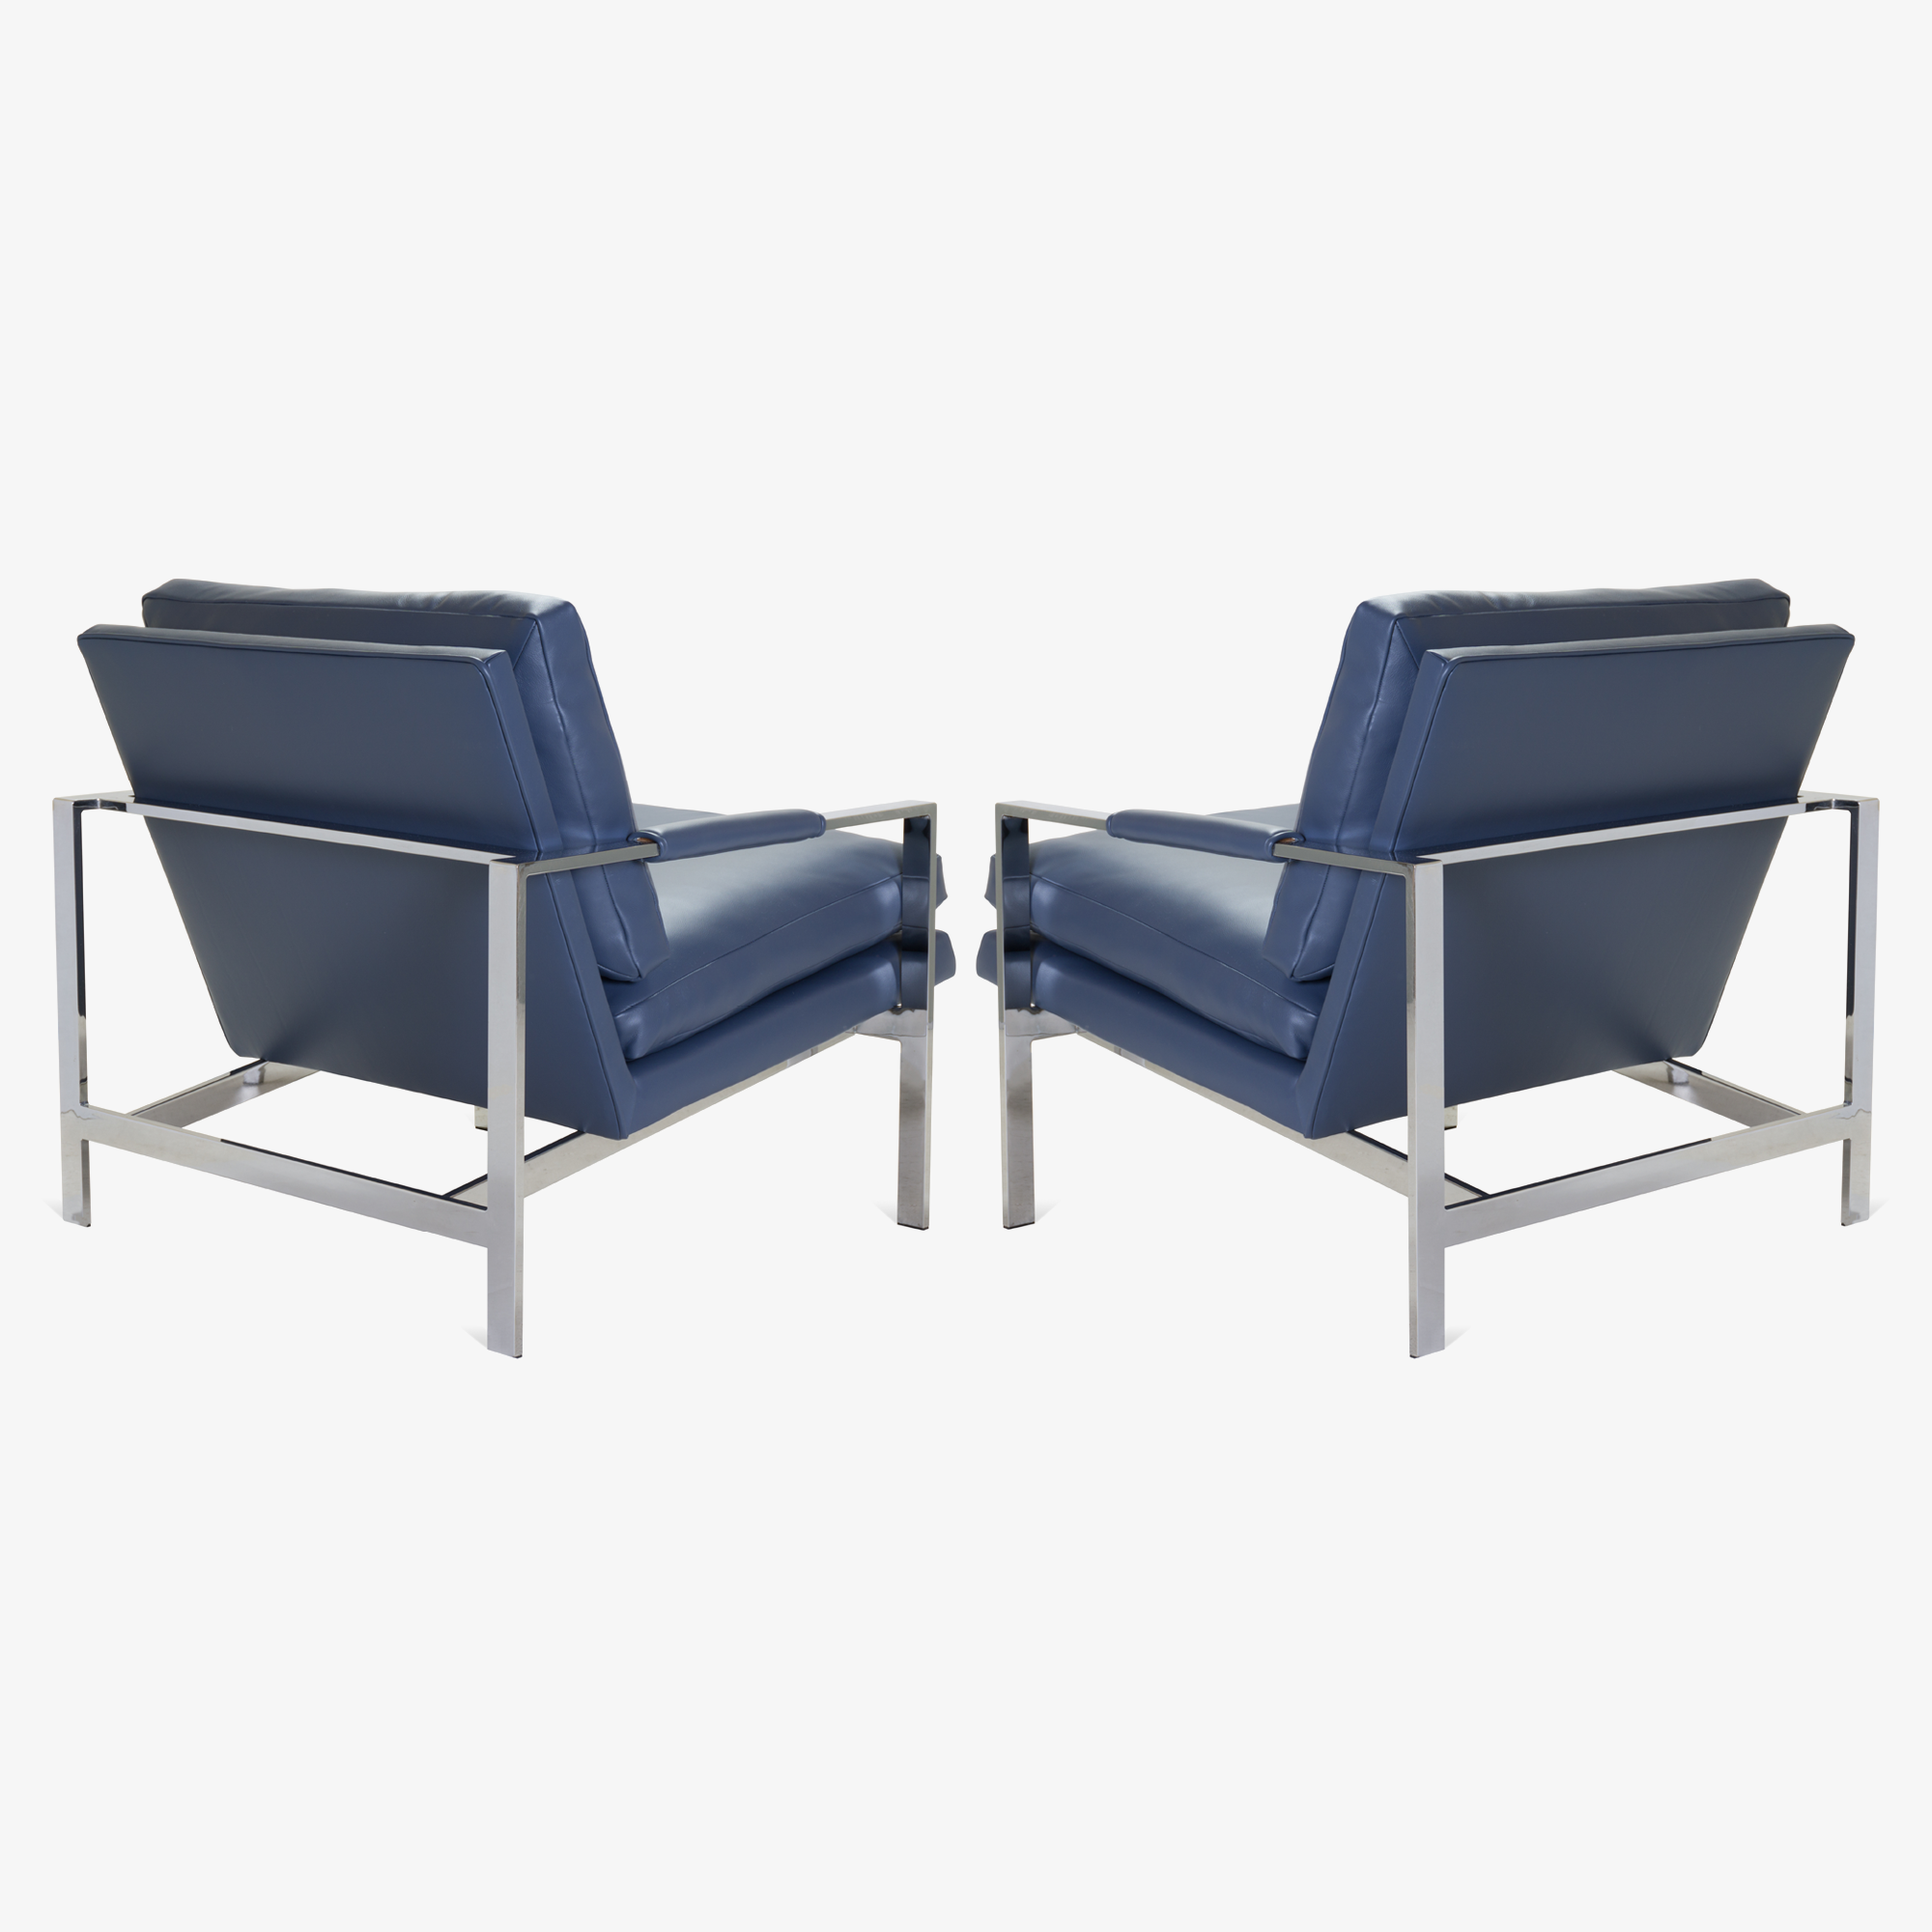 Flat-Bar Club Chairs in Navy Leather by Milo Baughman for Thayer Coggin4.png